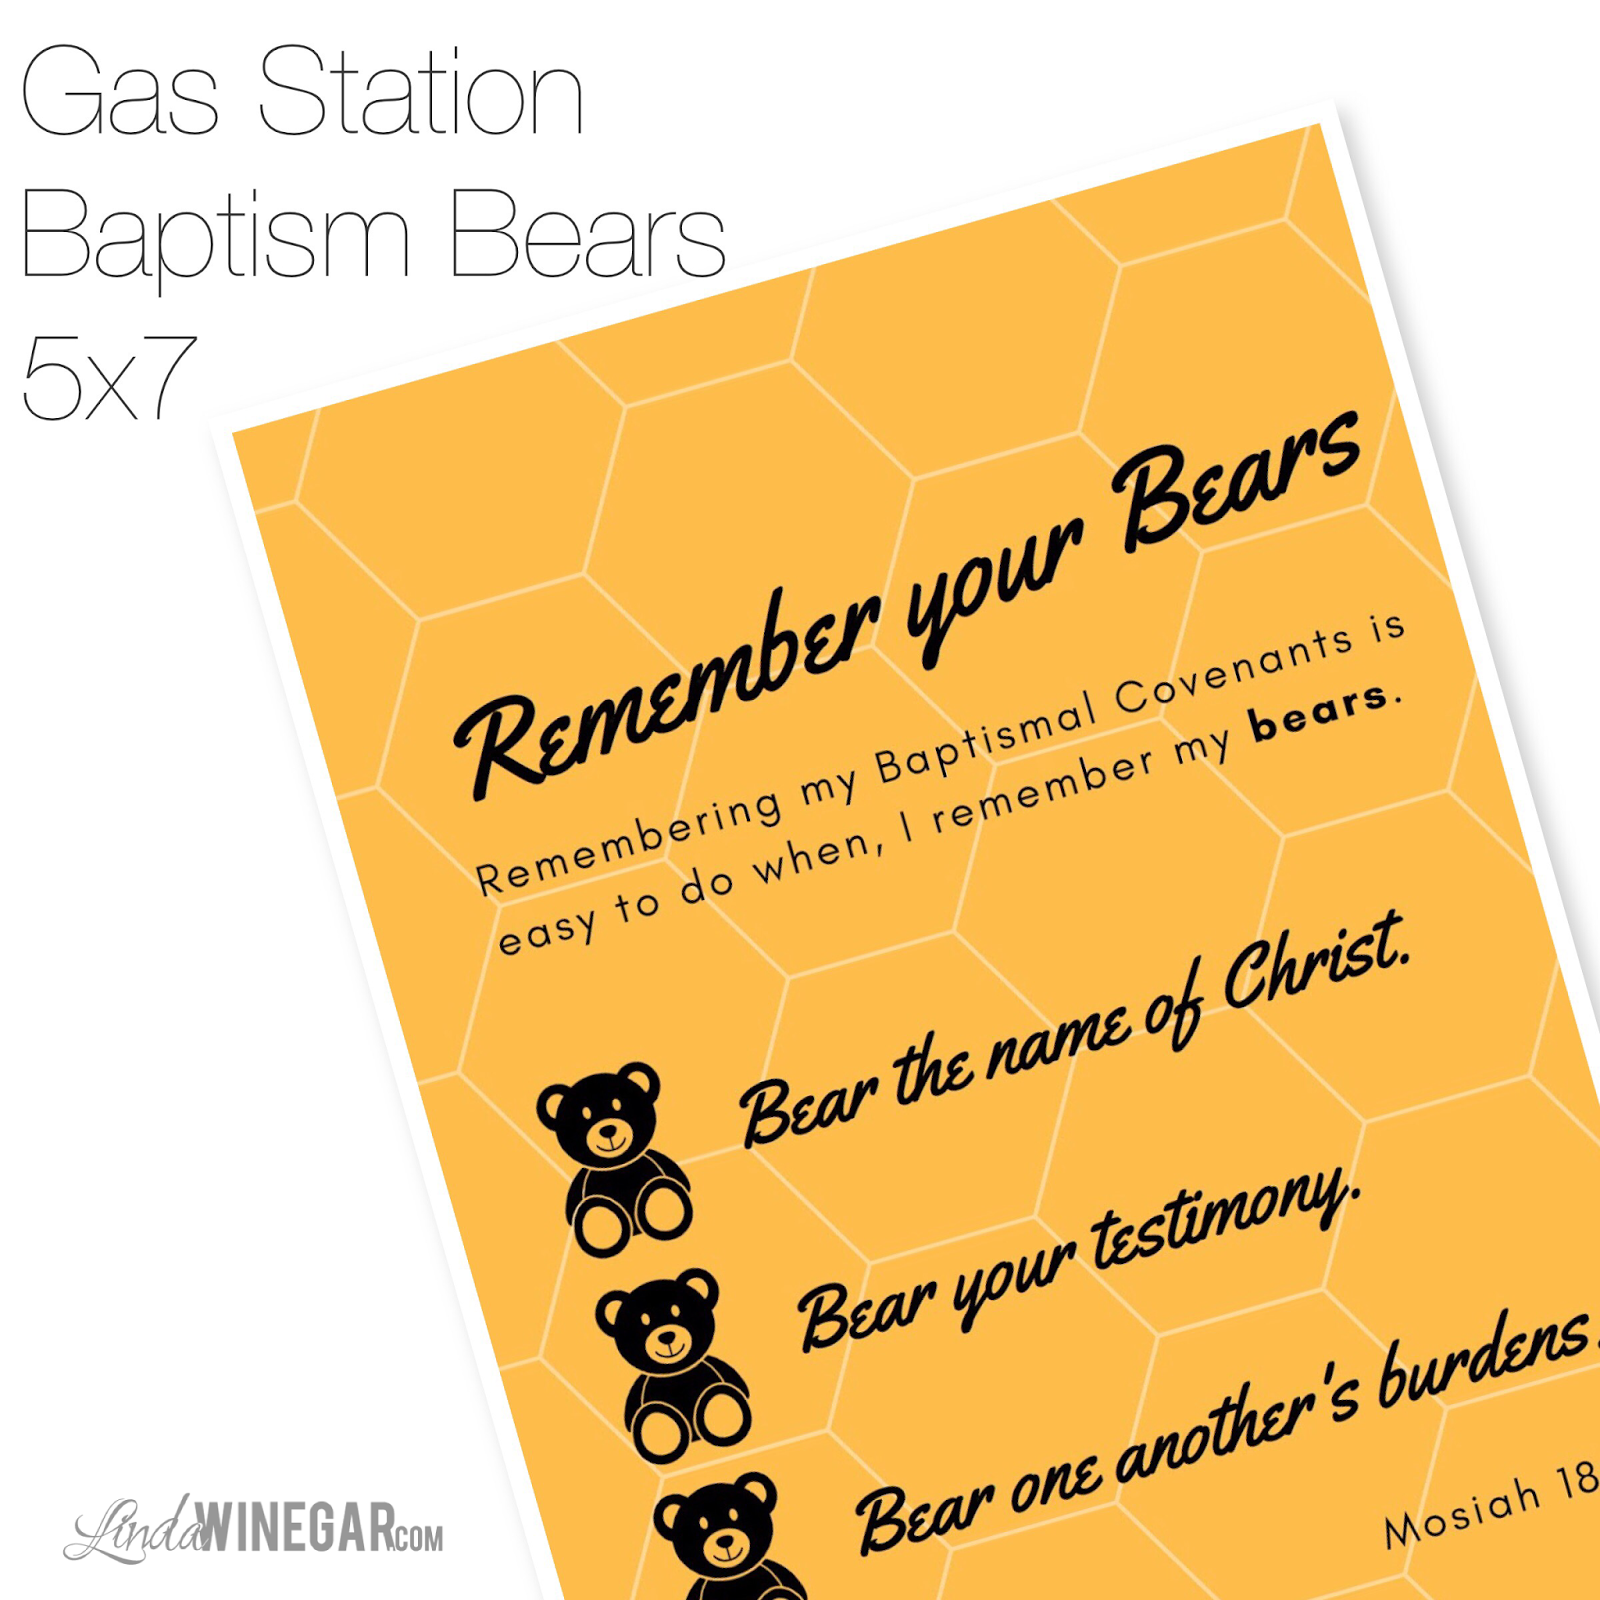 hight resolution of baptism bears 4x6 lindawinegar png